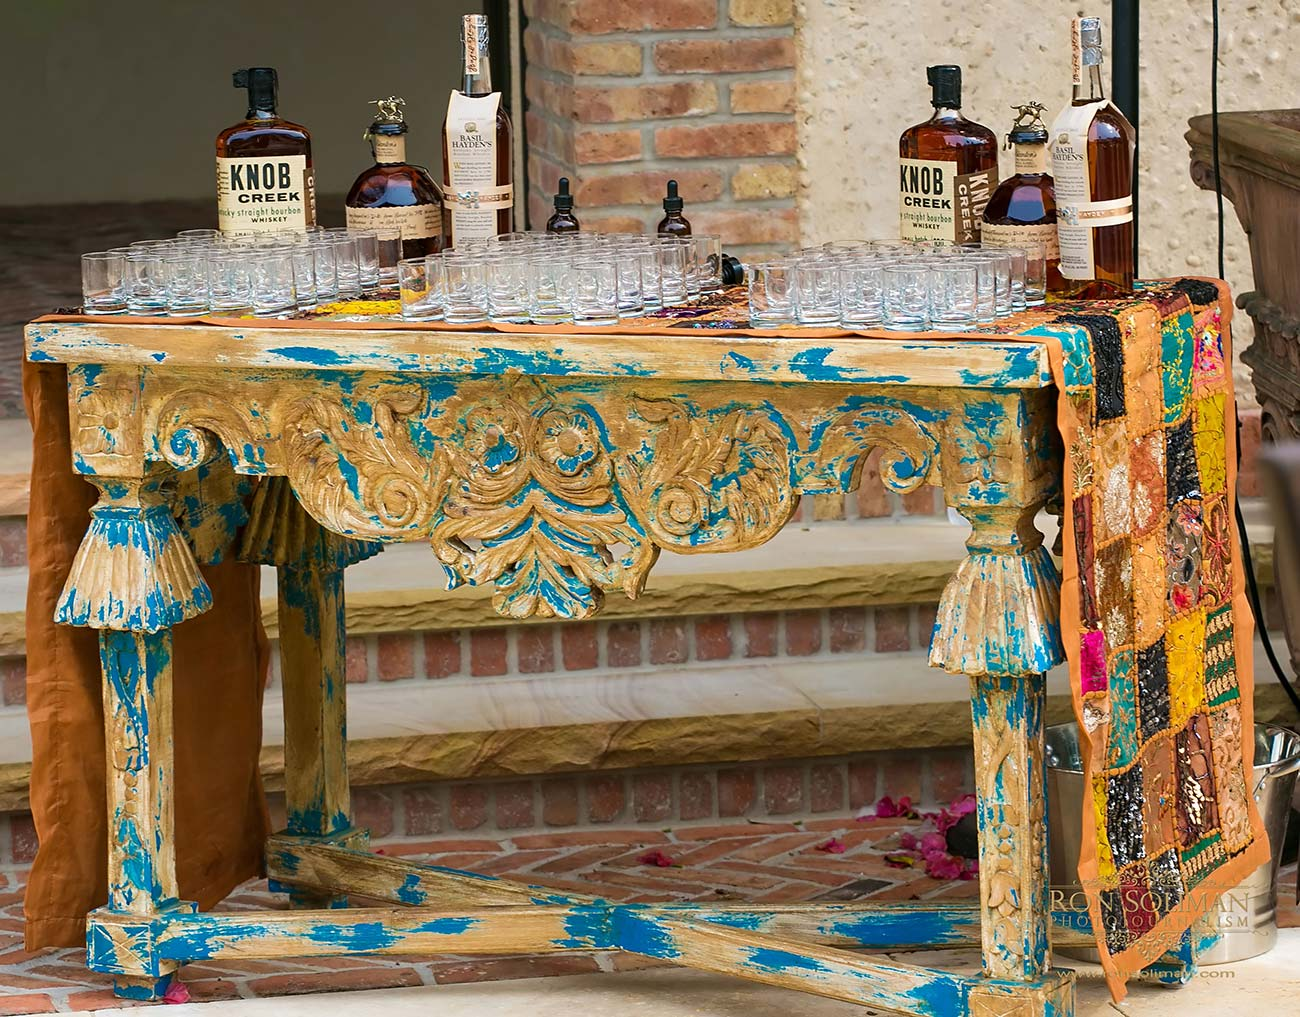 Shabby chic table holding glasses and Knob Creek whiskey bottles